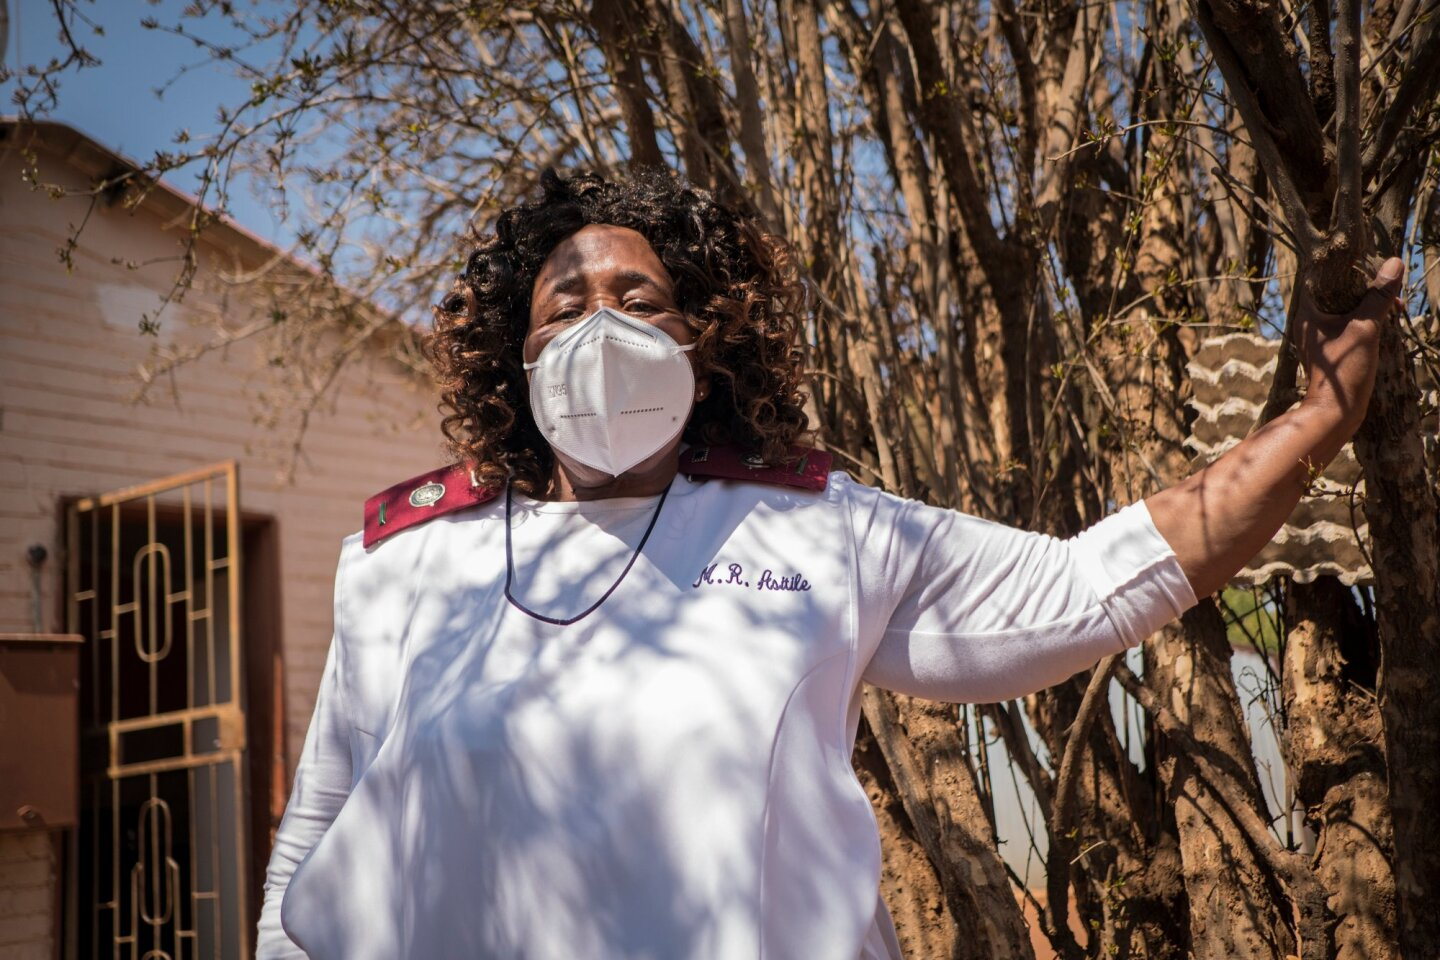 Sister Rachel Asitile (61) stands for a portrait outside the home of a patient who tested positive for COVID-19. | Thomson Reuters Foundation/Gulshan Khan